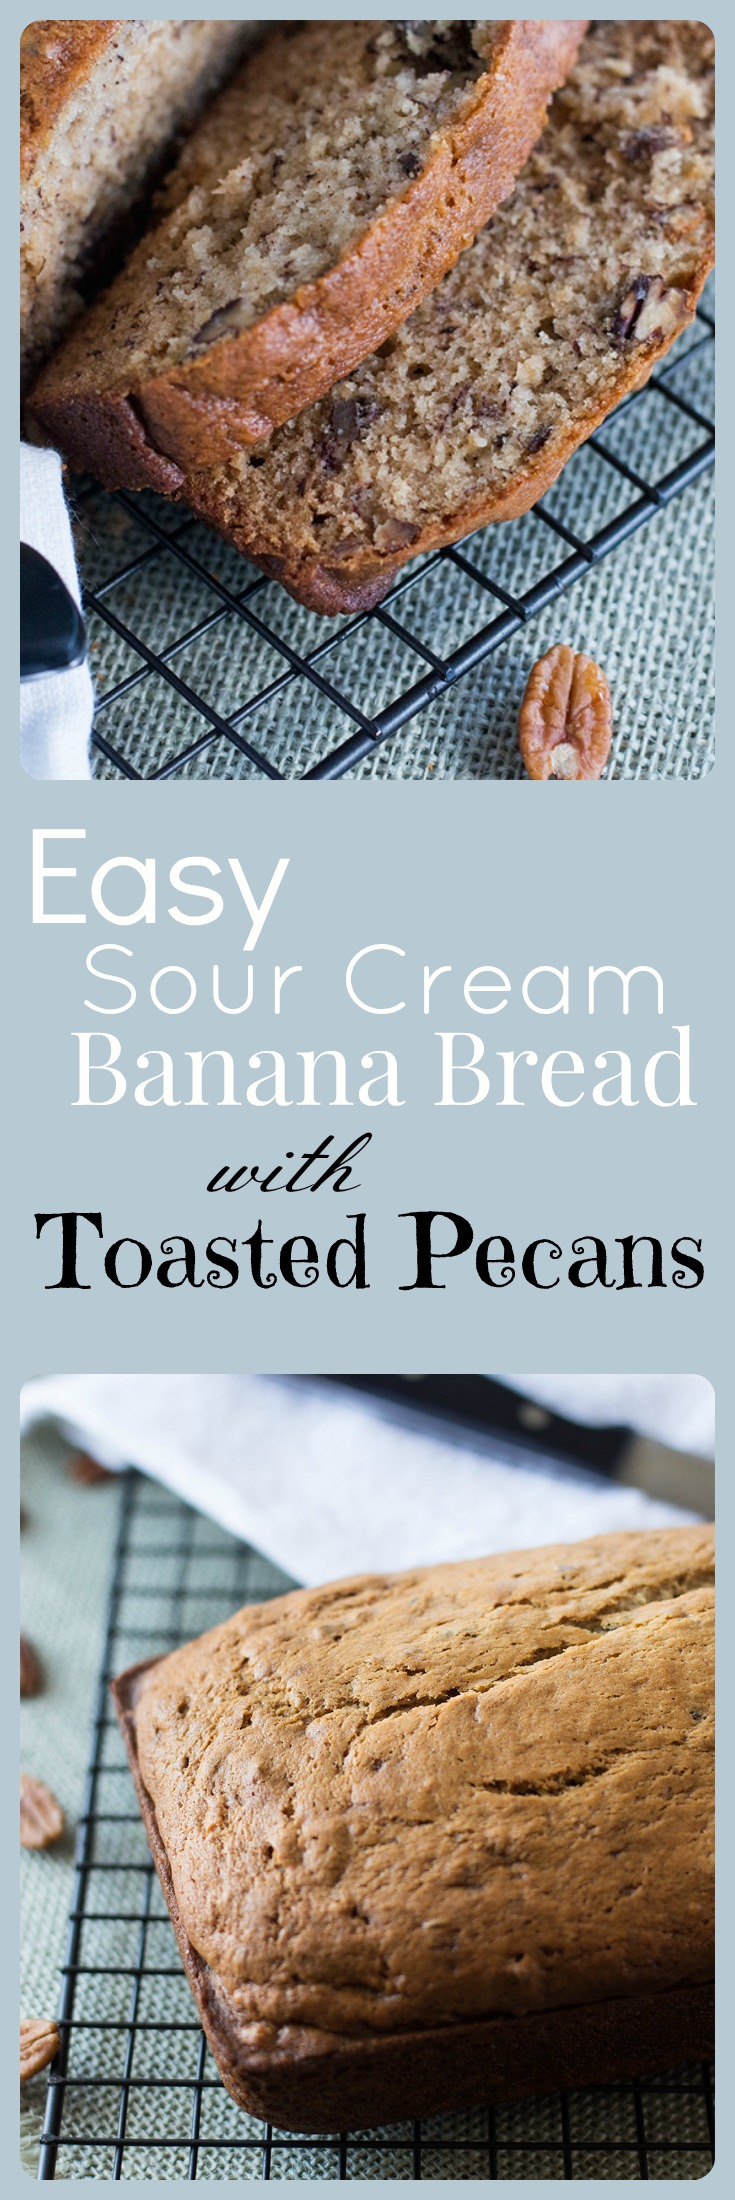 Easy to make moist and lightly sweetened sour cream banana bread with toasted pecans made with pure can sugar, and organic flour.